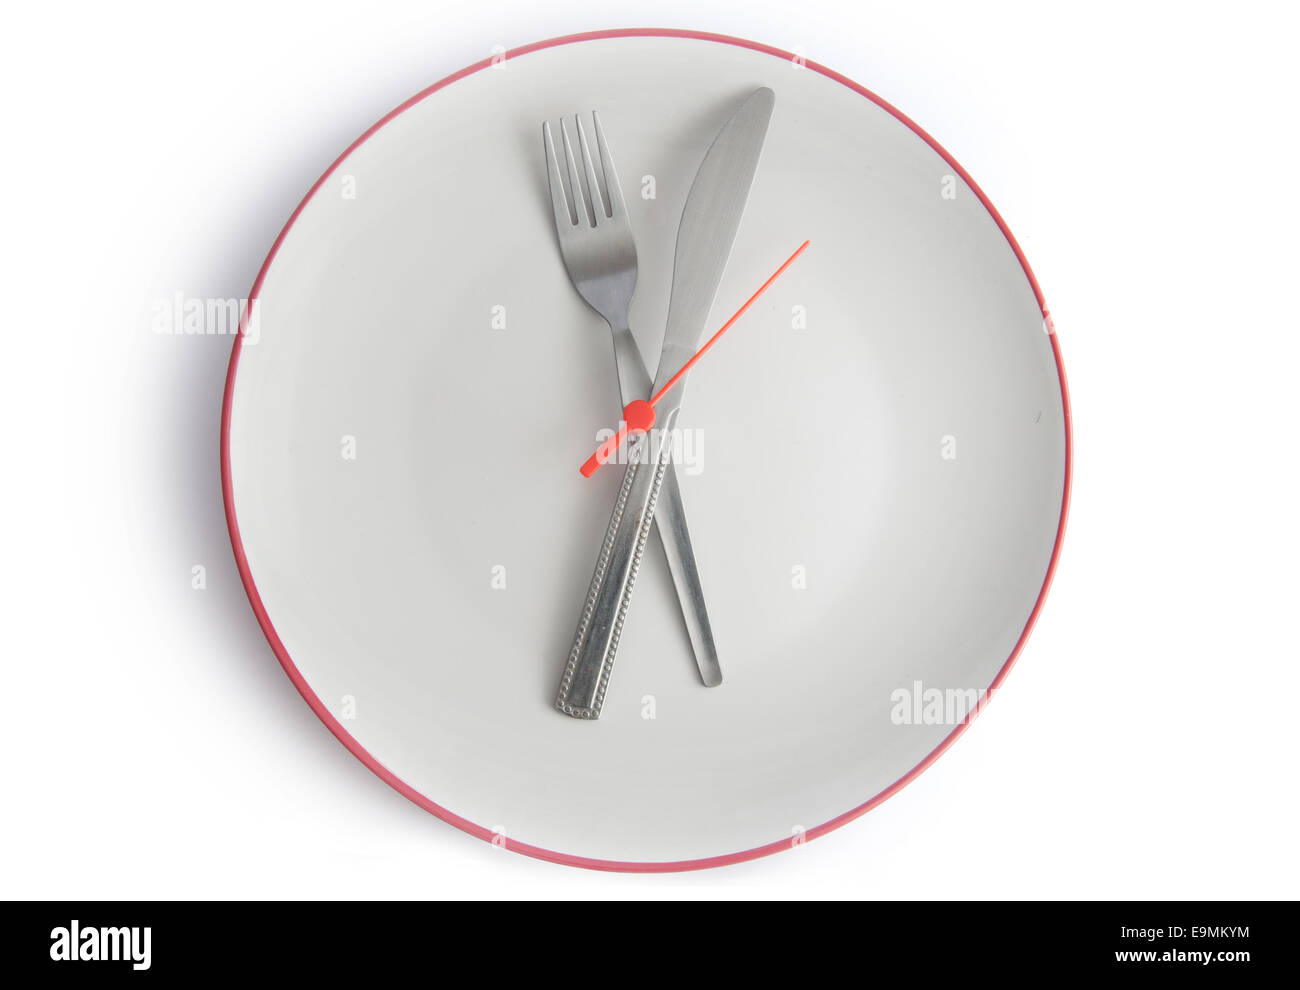 Meal time clock Stock Photo